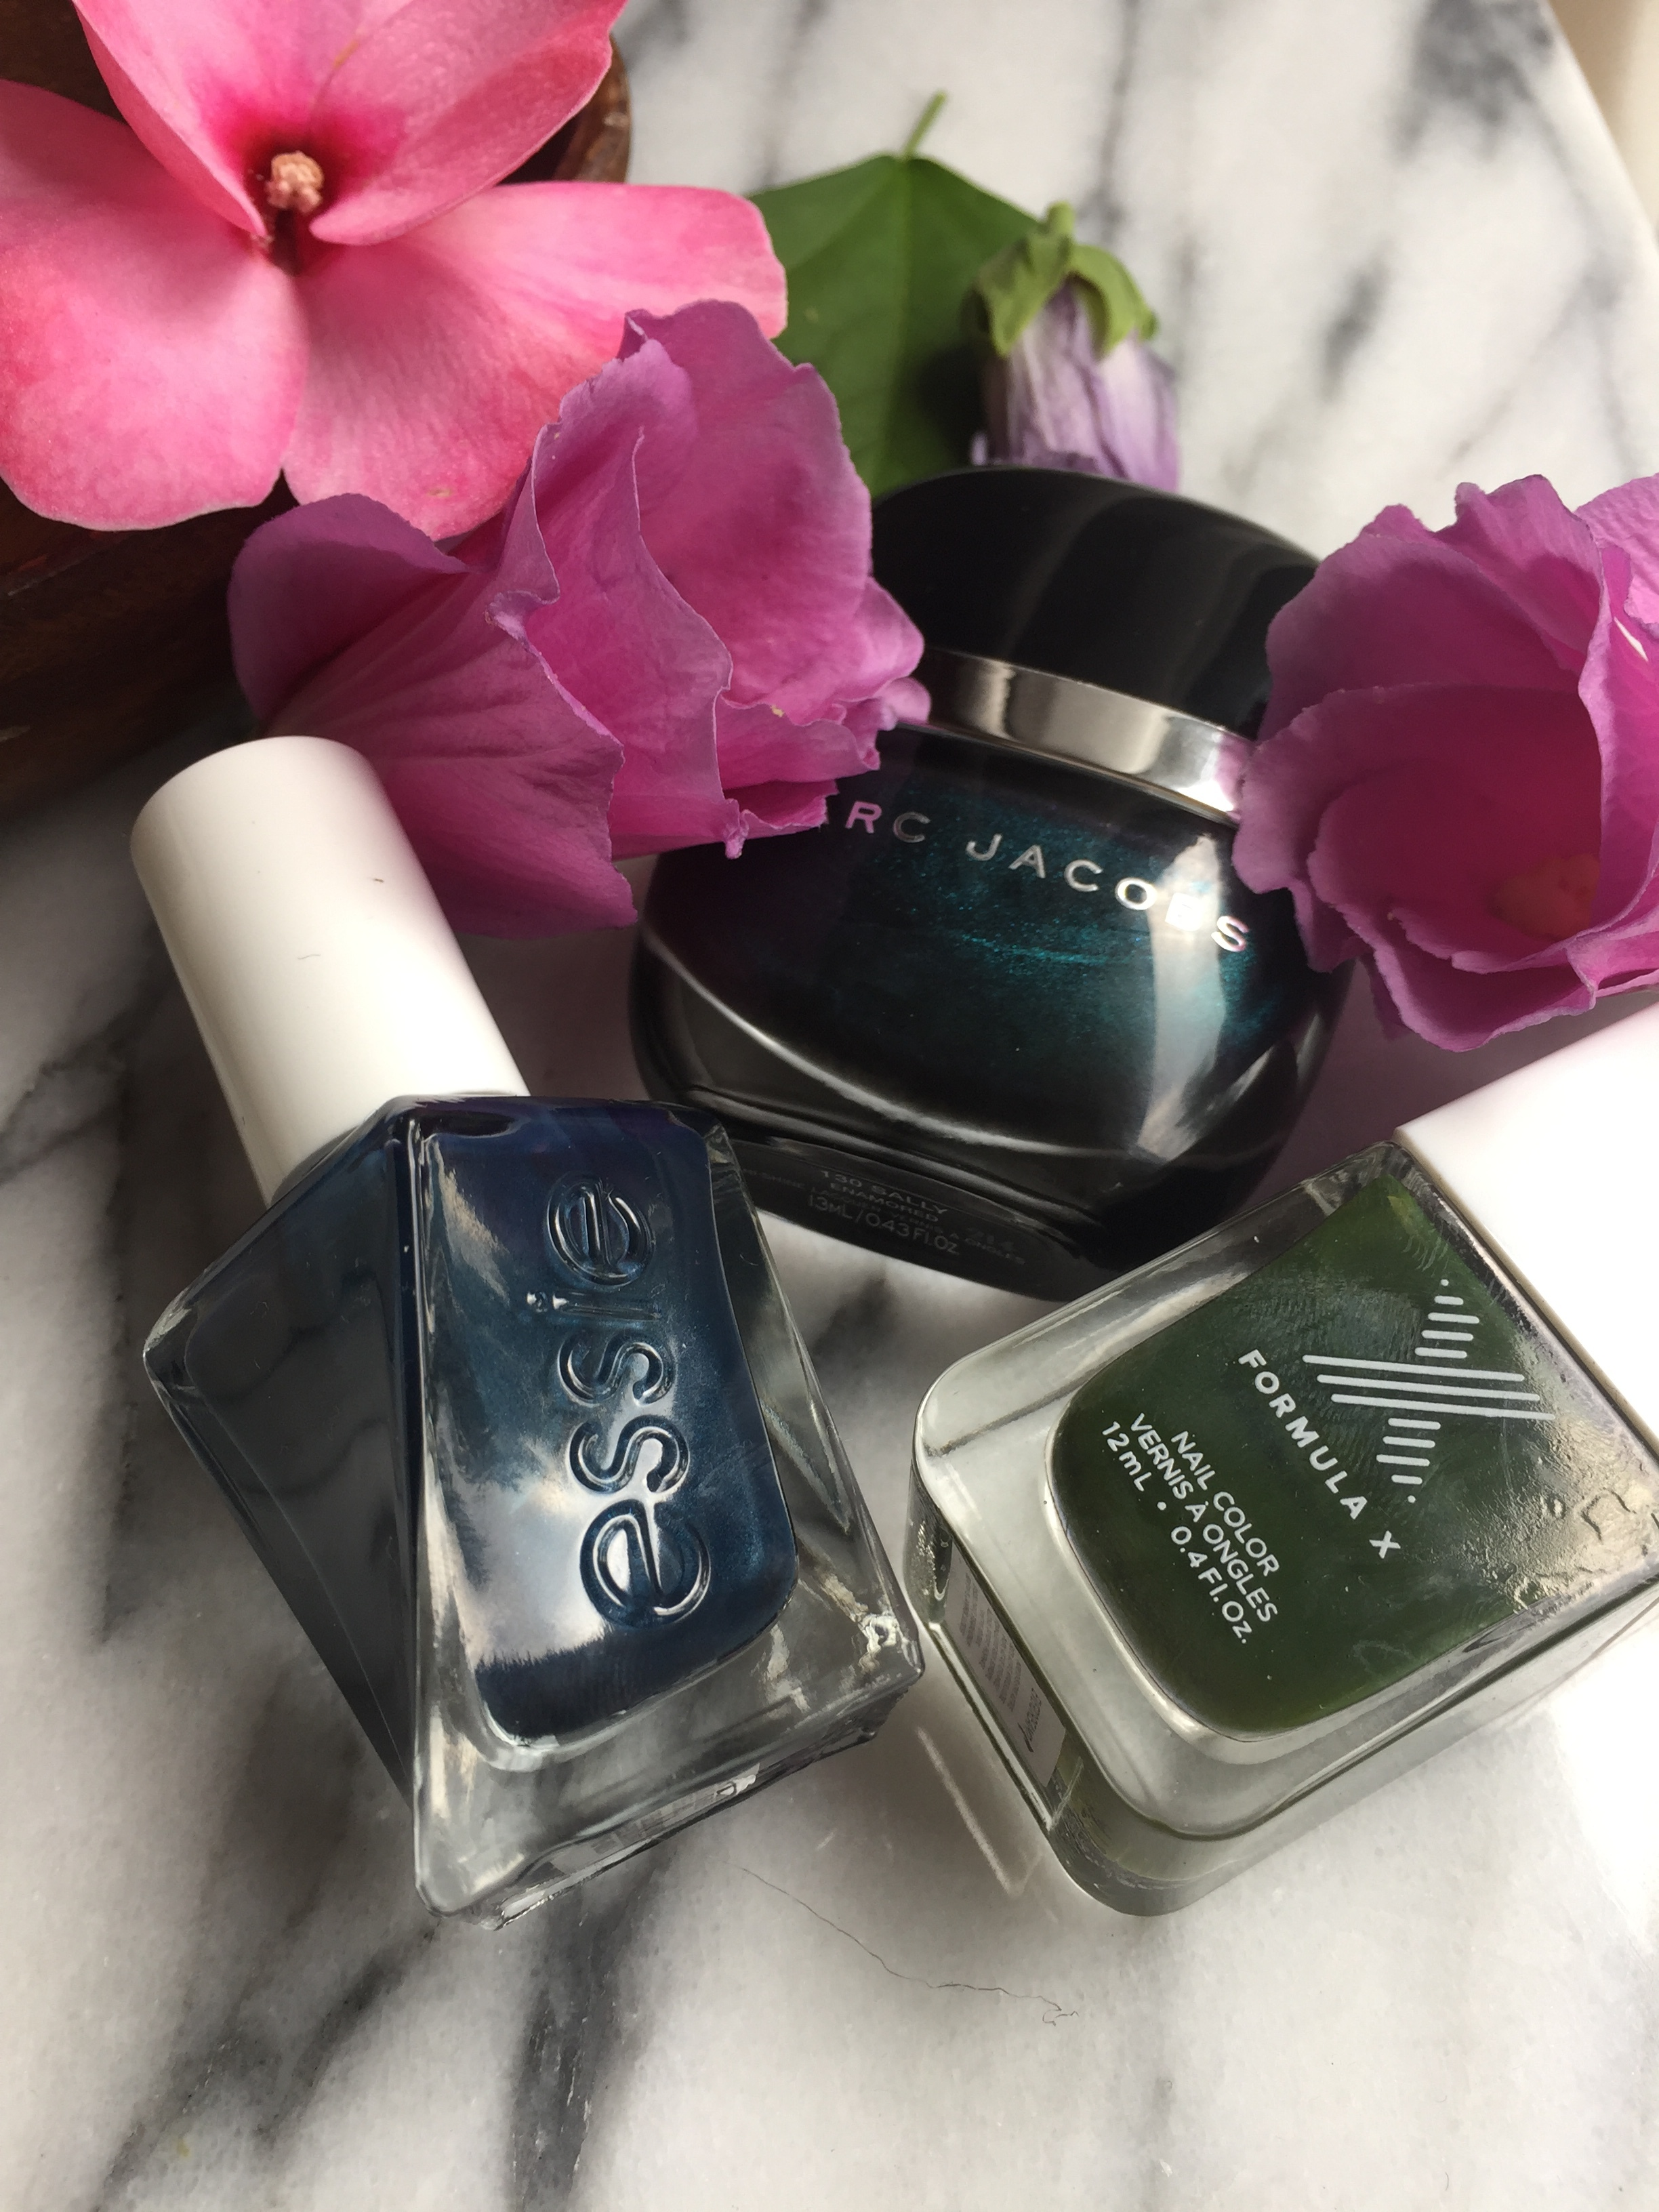 Formula X - Everdream, Marc Jacobs - 130 Sally, Essie -390  Surrounded by Studs